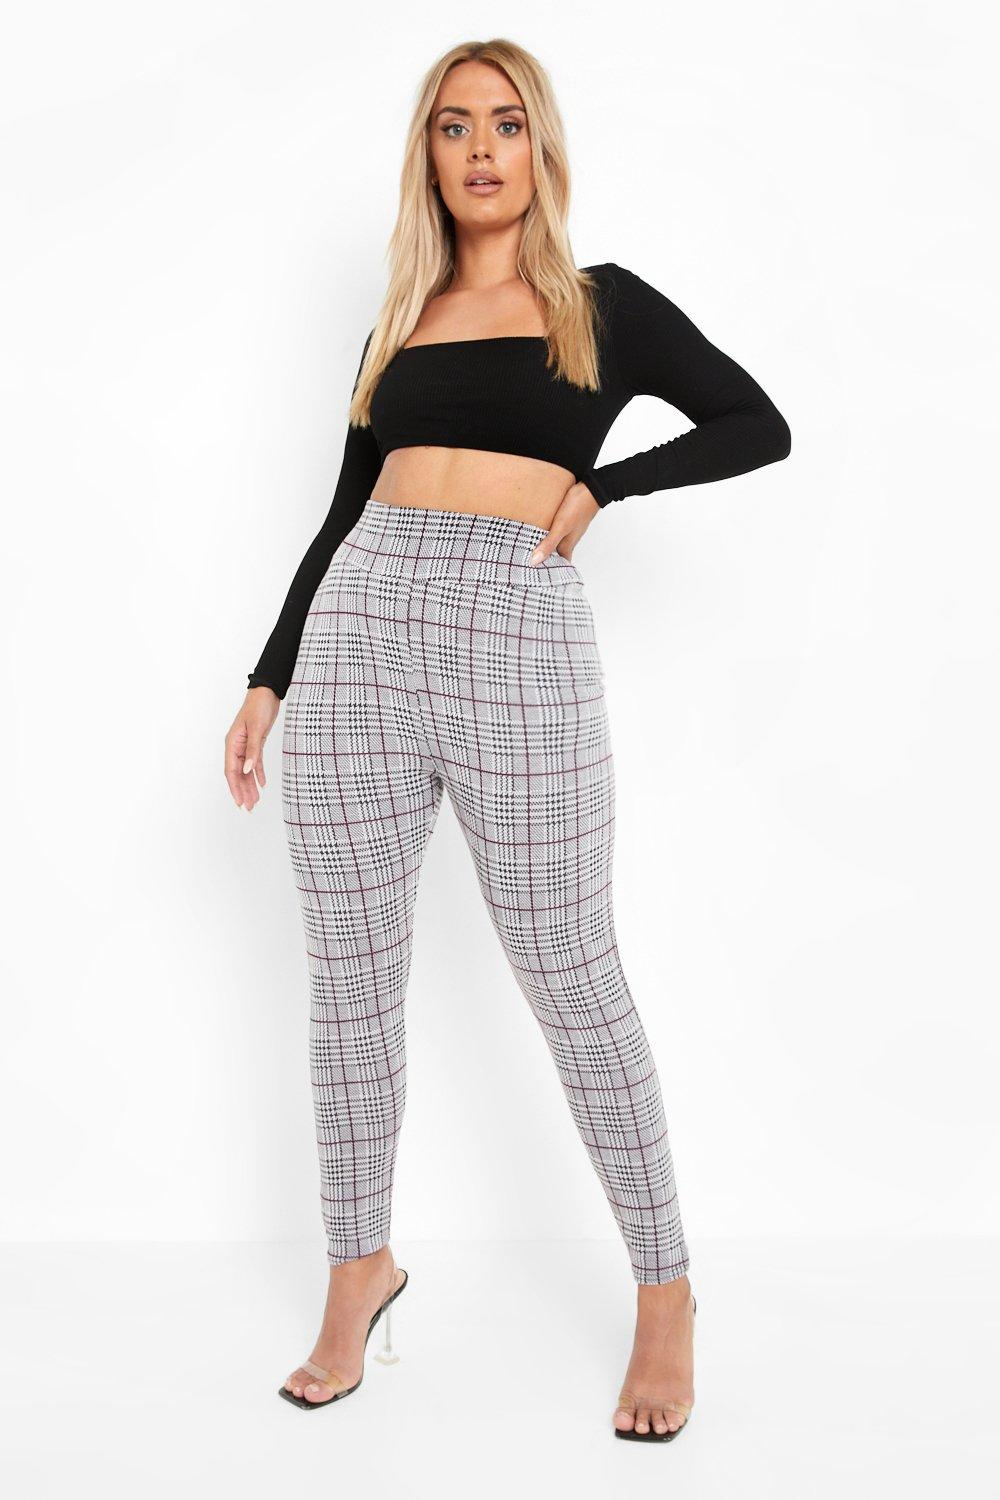 boohoo Womens Plus Checked Knitted High Waist Legging - Grey - 20, Grey